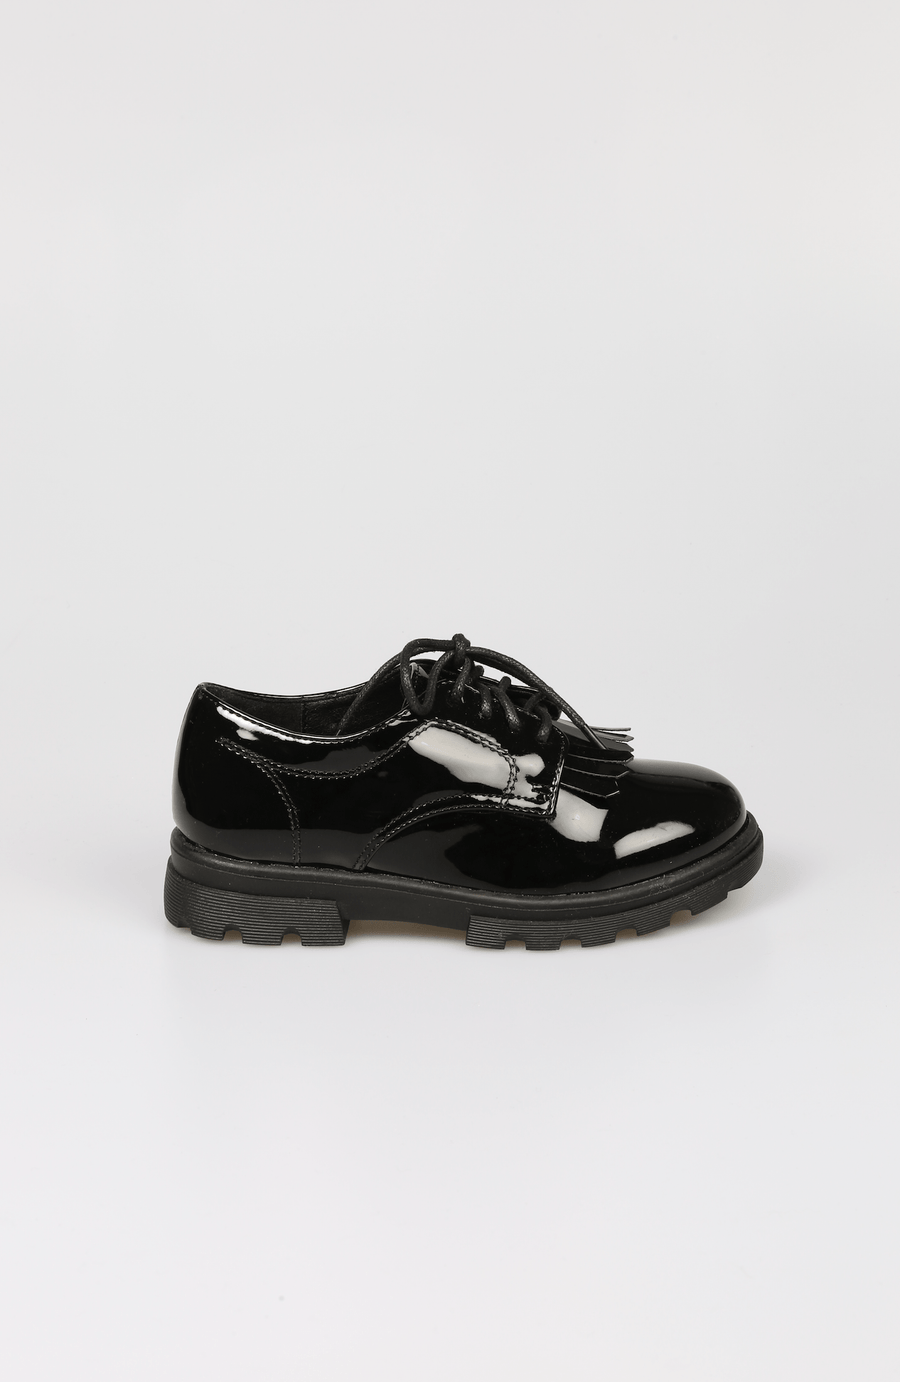 Layla Lace up Patent Black Brogues SS20 From Little Attitude